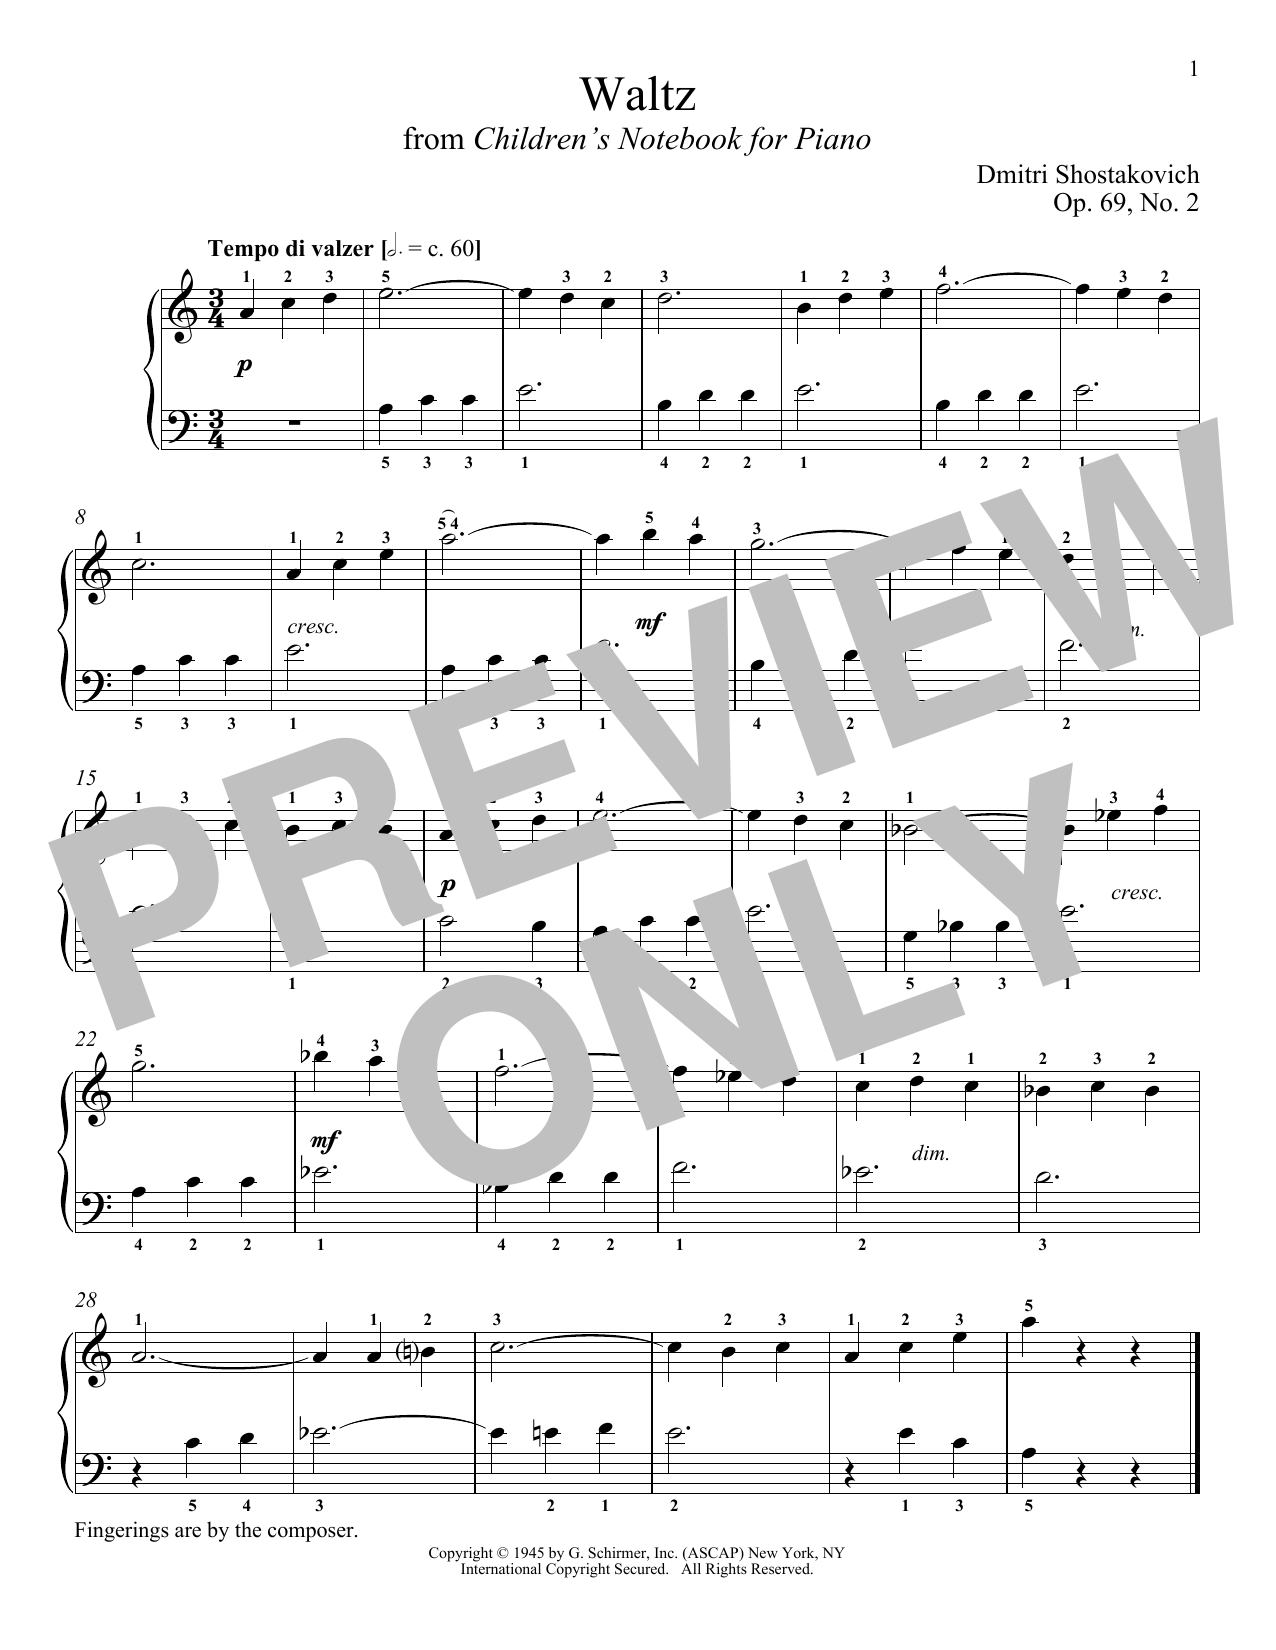 Download Dmitri Shostakovich 'Waltz, Op. 69, No. 2' Digital Sheet Music Notes & Chords and start playing in minutes